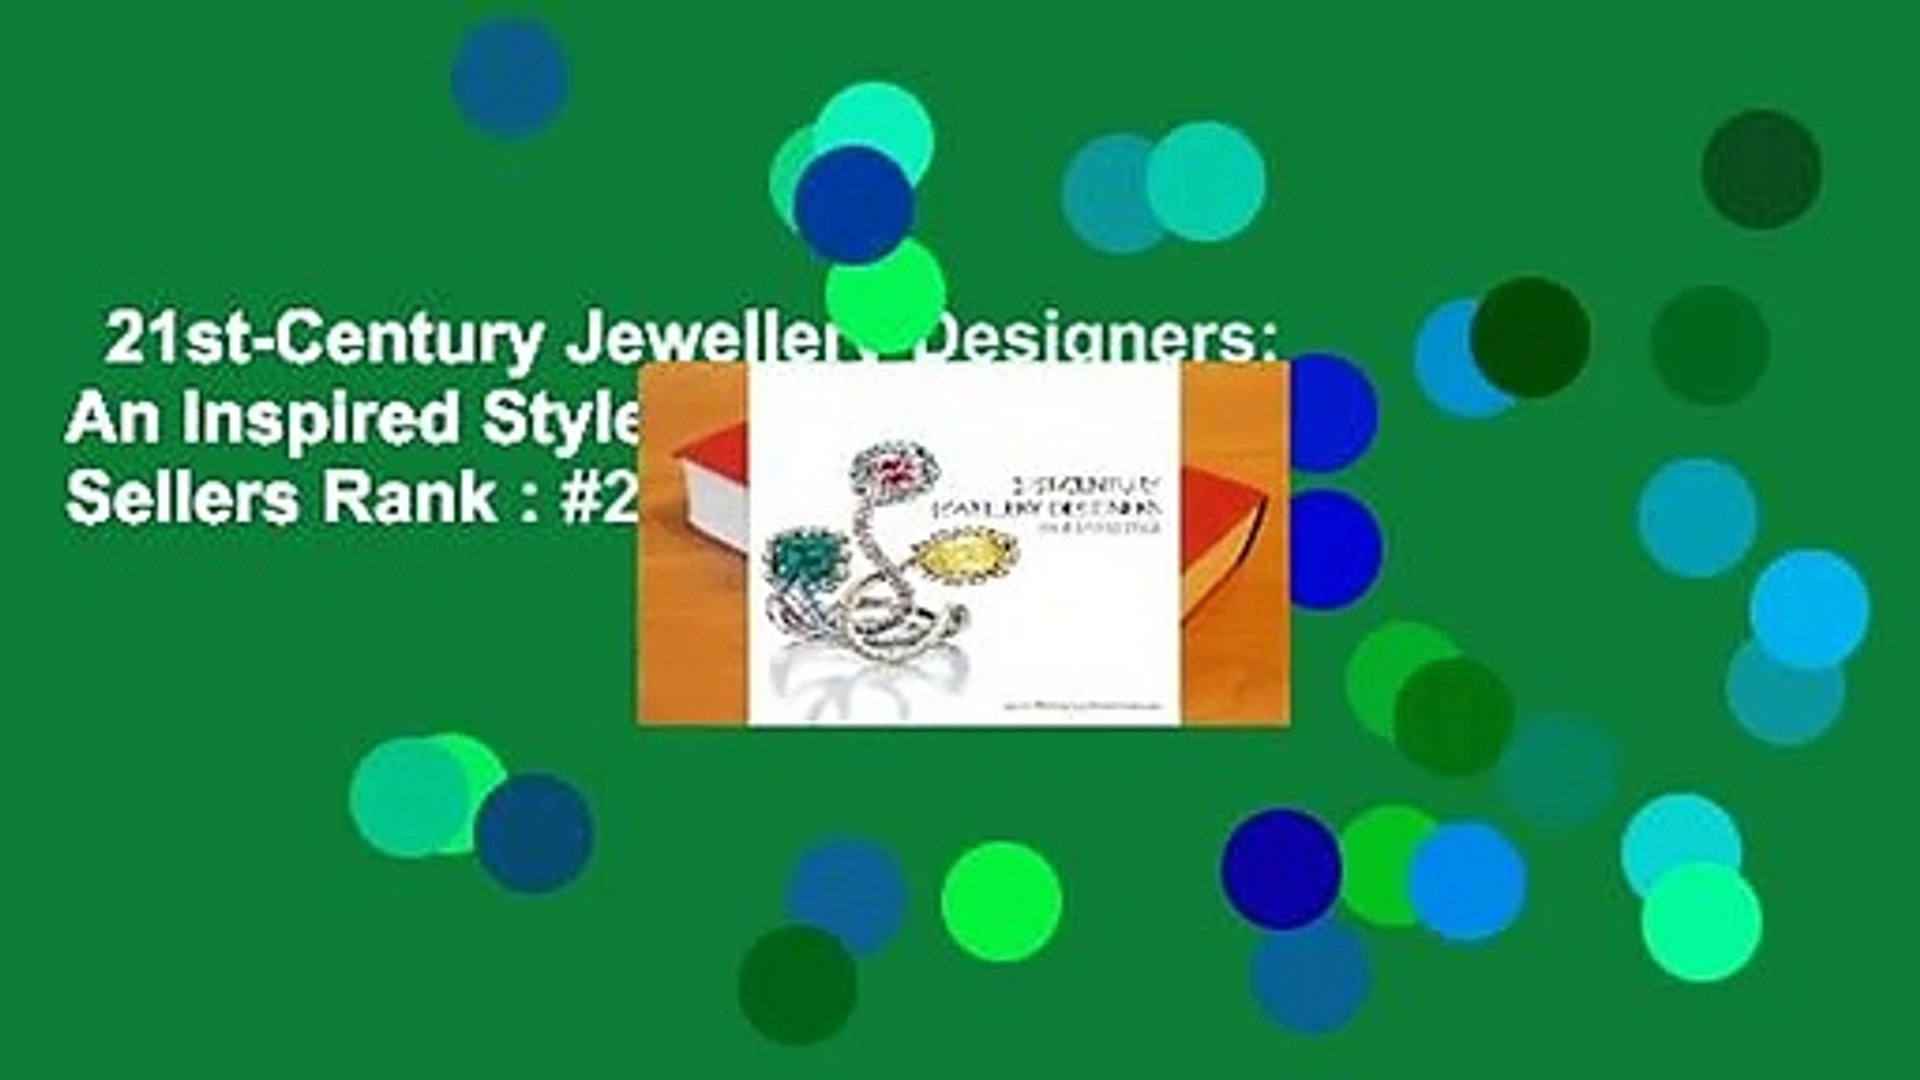 21st-Century Jewellery Designers: An Inspired Style  Best Sellers Rank : #2